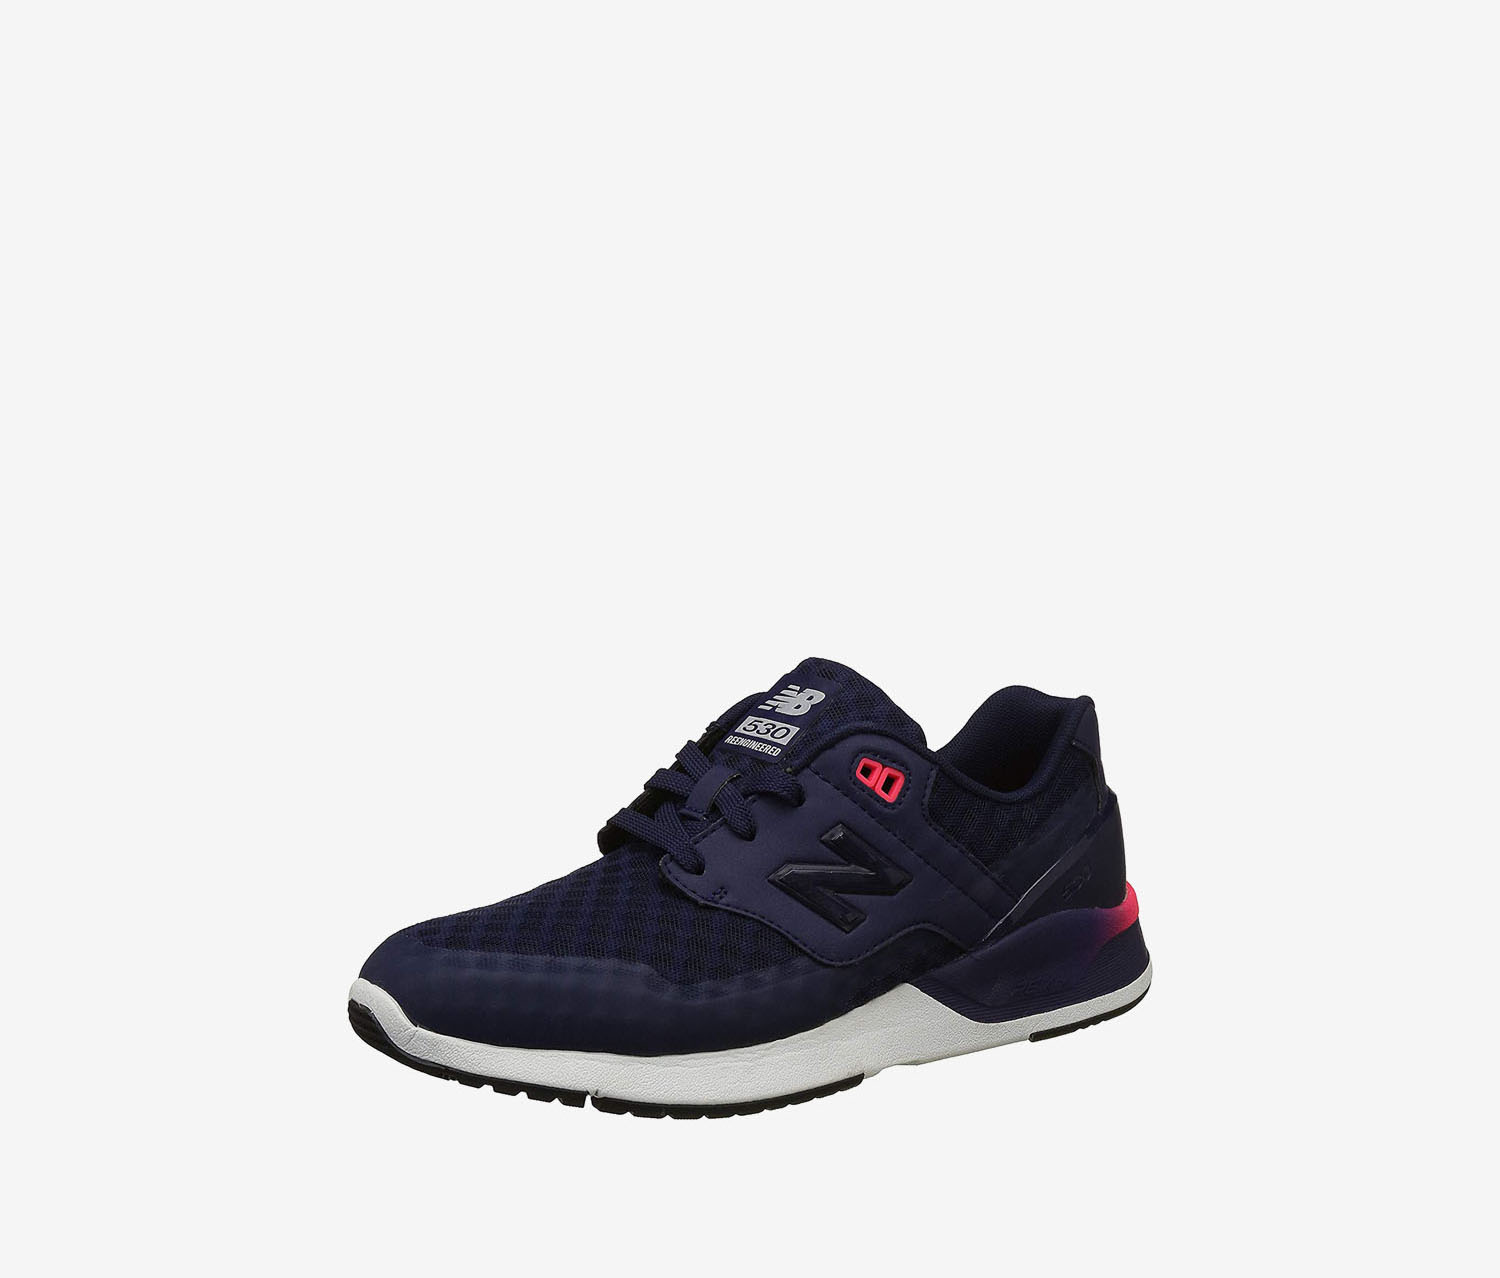 New Balance Men's Running Shoes, Navy